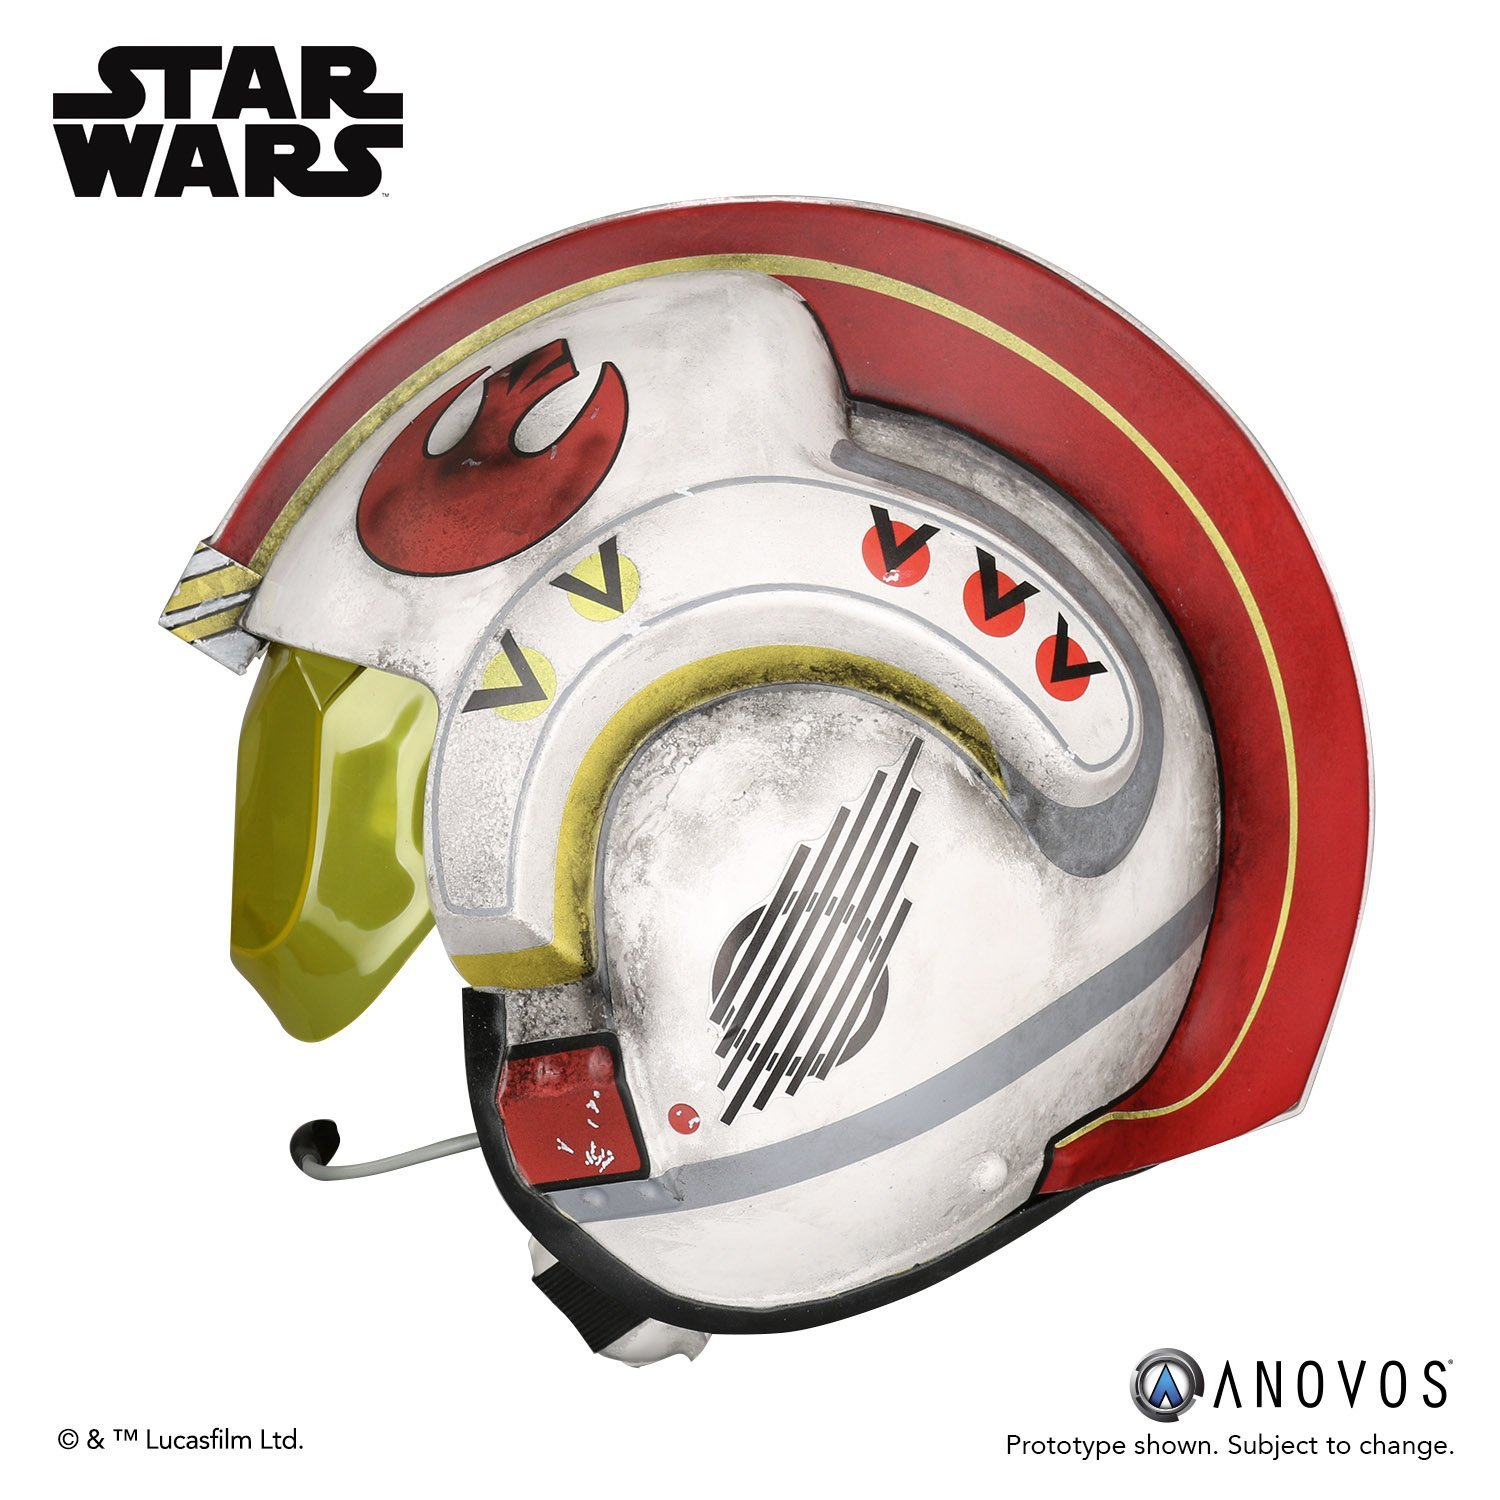 Star Wars: Luke Skywalker's Rebel Pilot Helmet - Prop Replica image